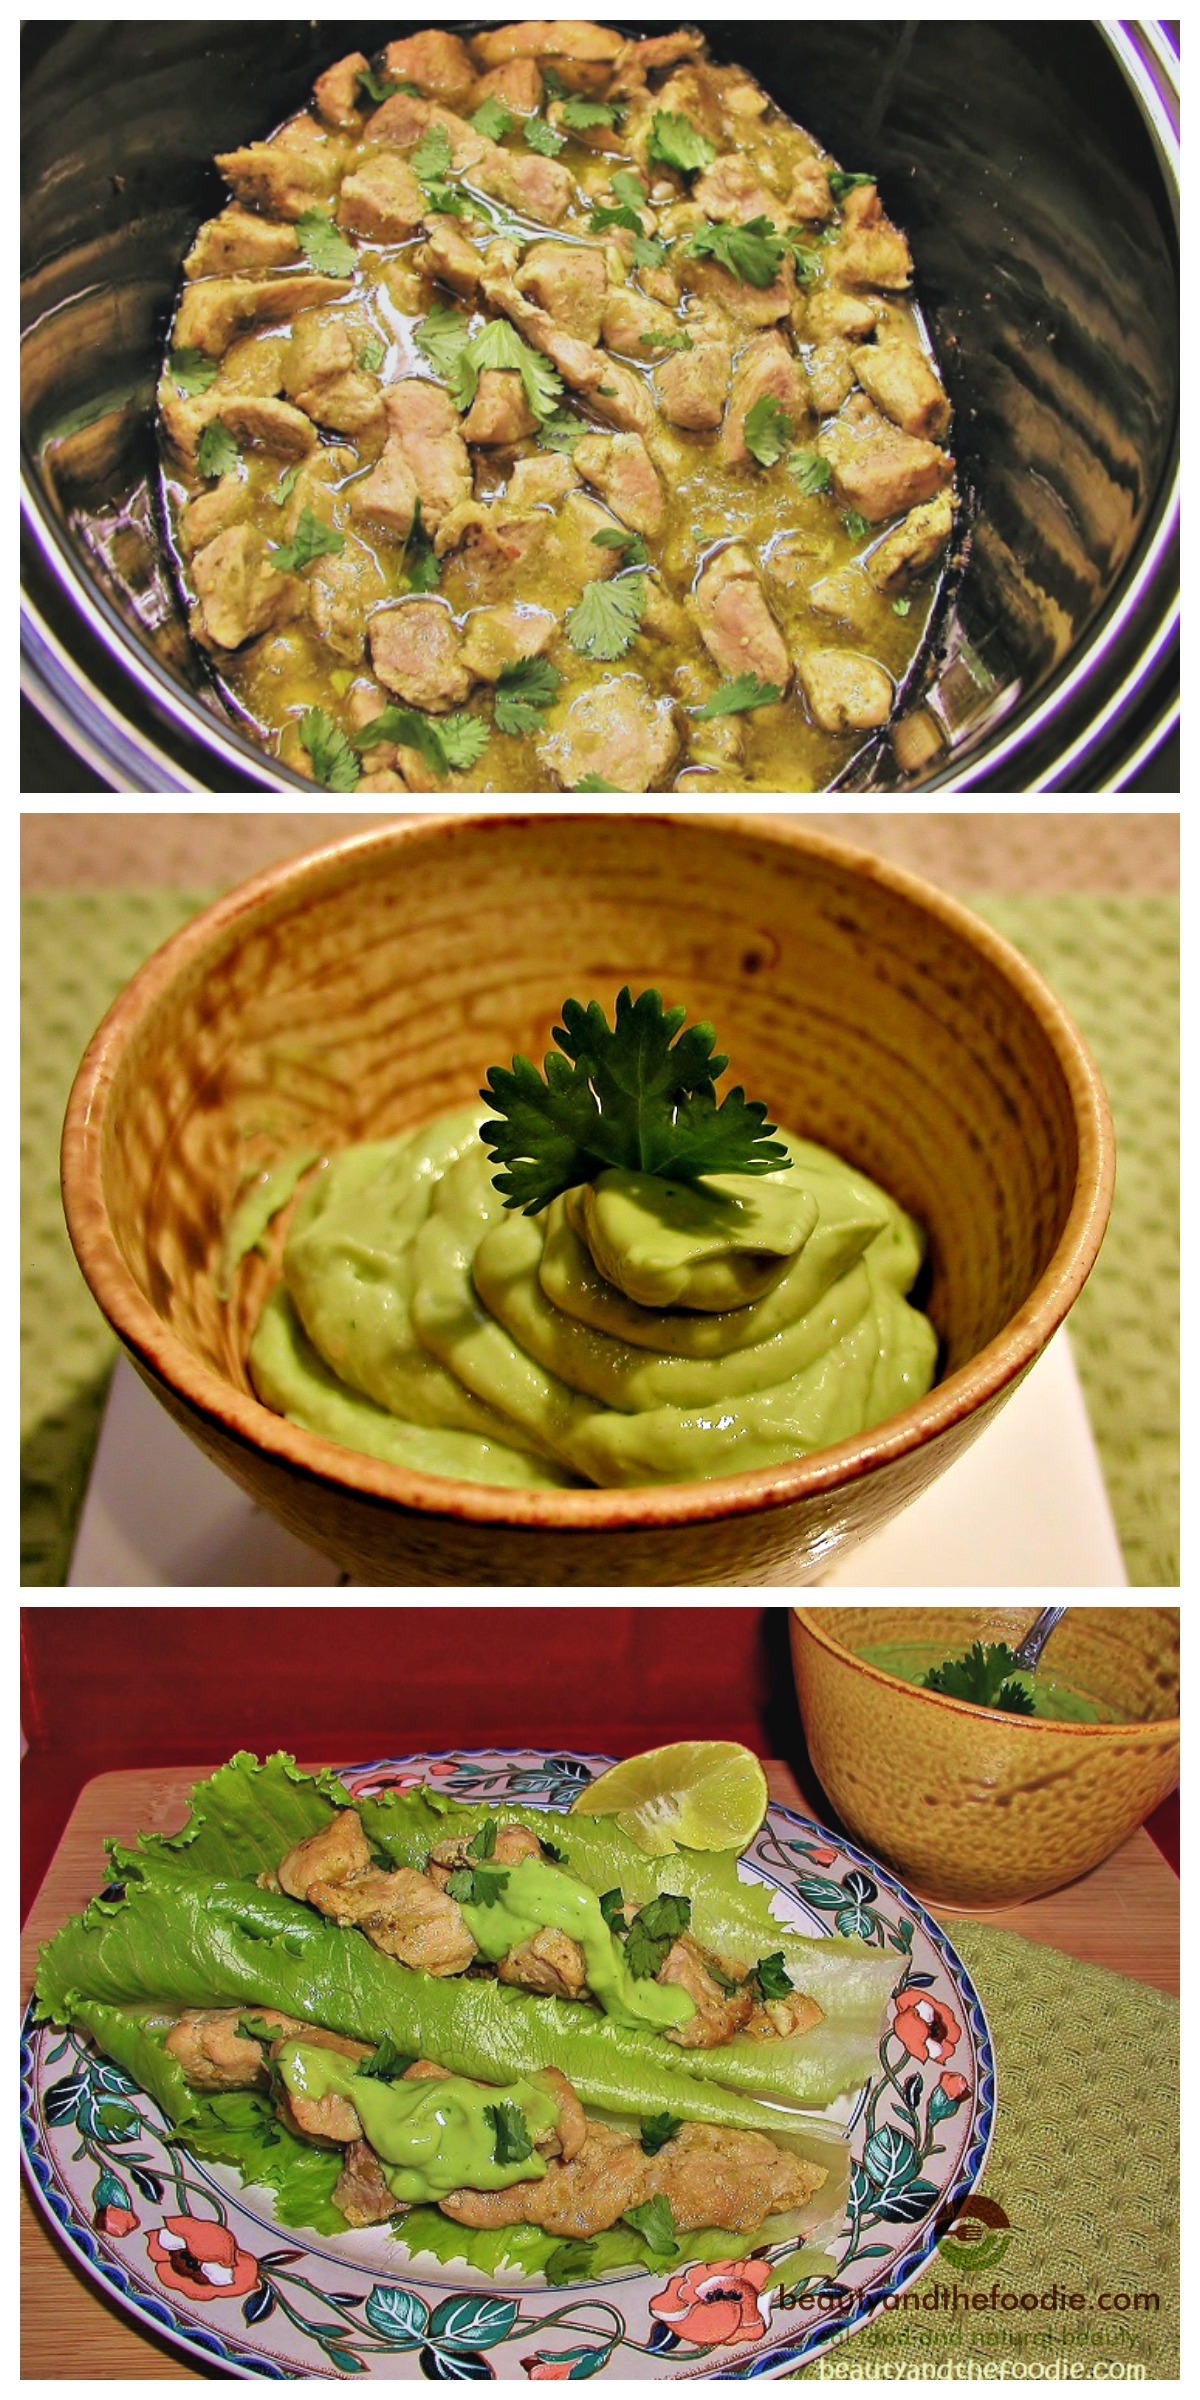 Paleo Crock Pot Chile Verde Tacos with Avocado Cilantro Lime Sauce, primal, paleo and low carb.